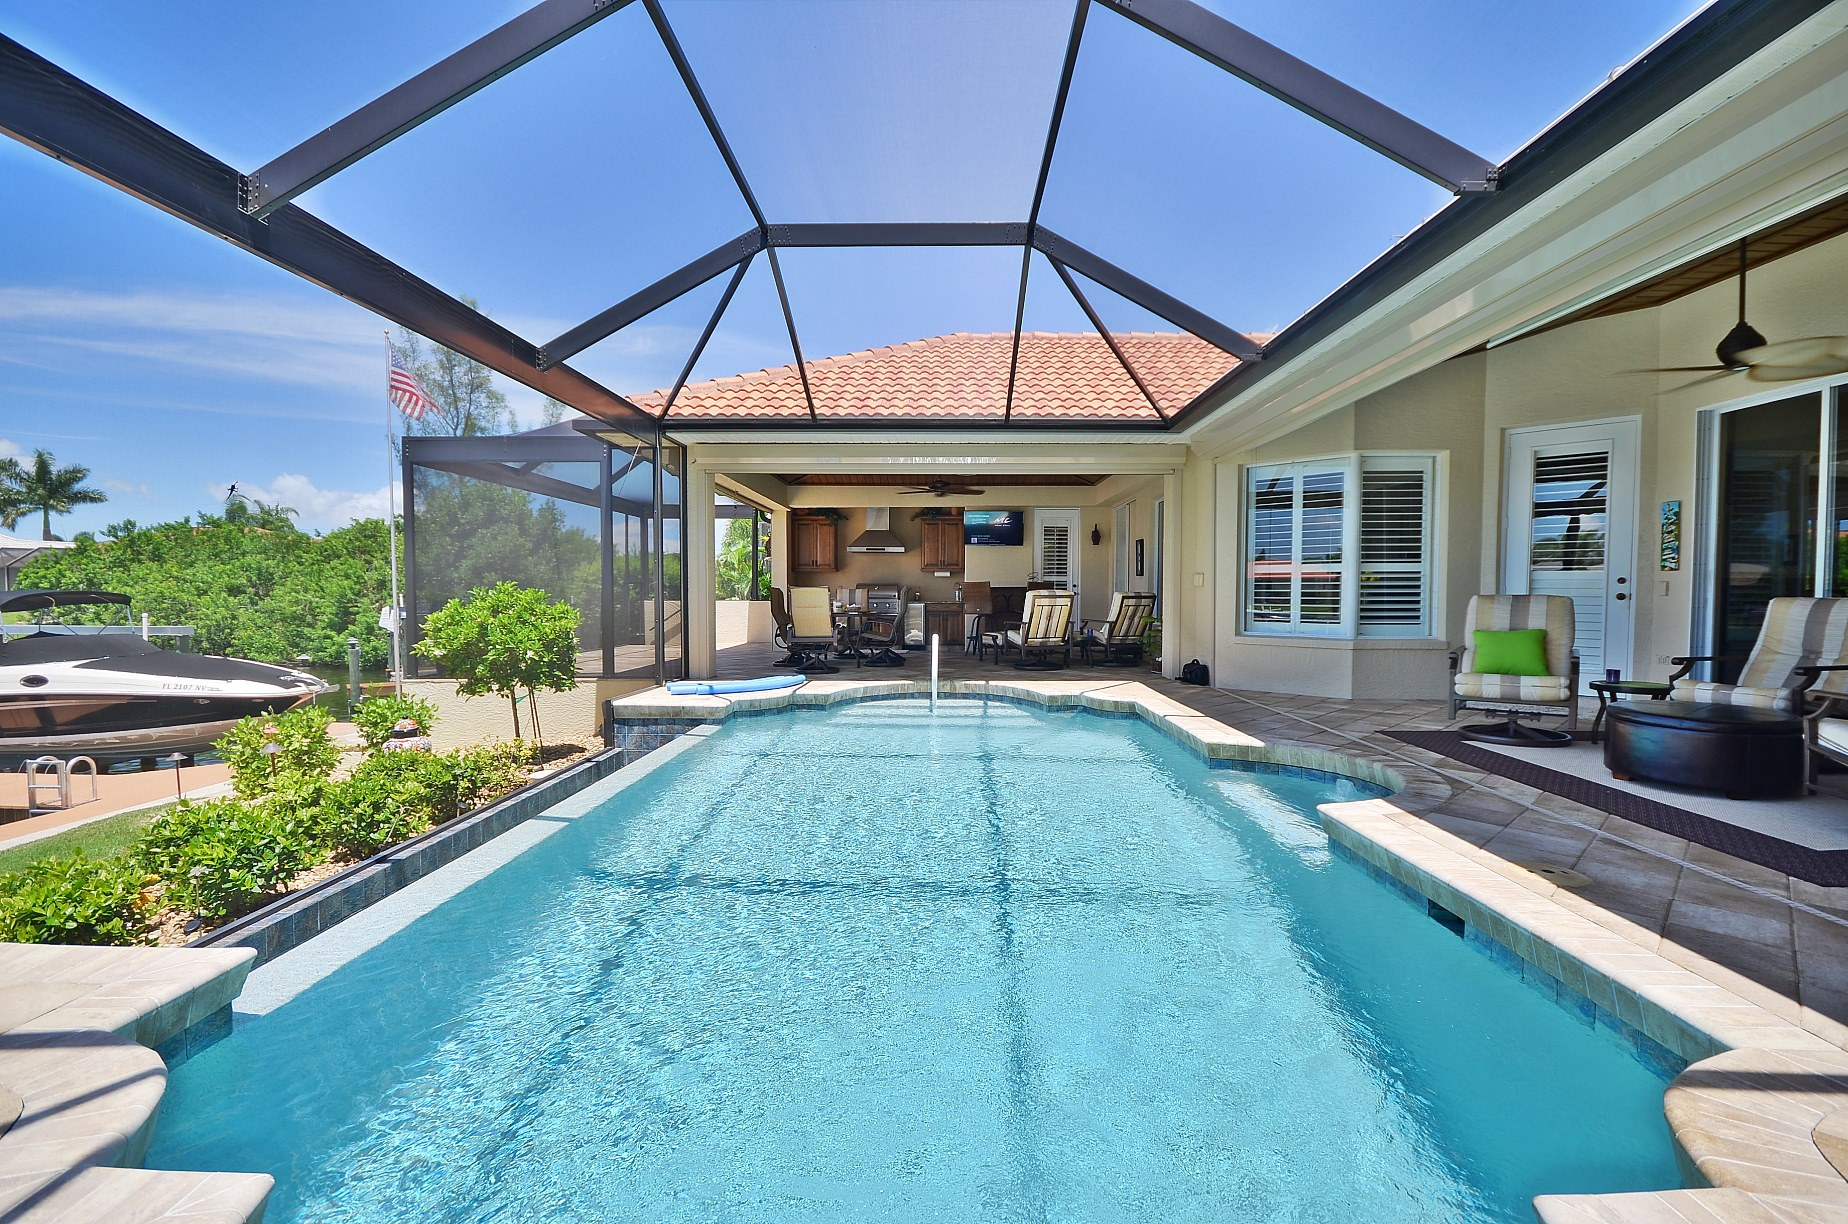 Extend Your Outdoor Living Space With Screen Enclosures